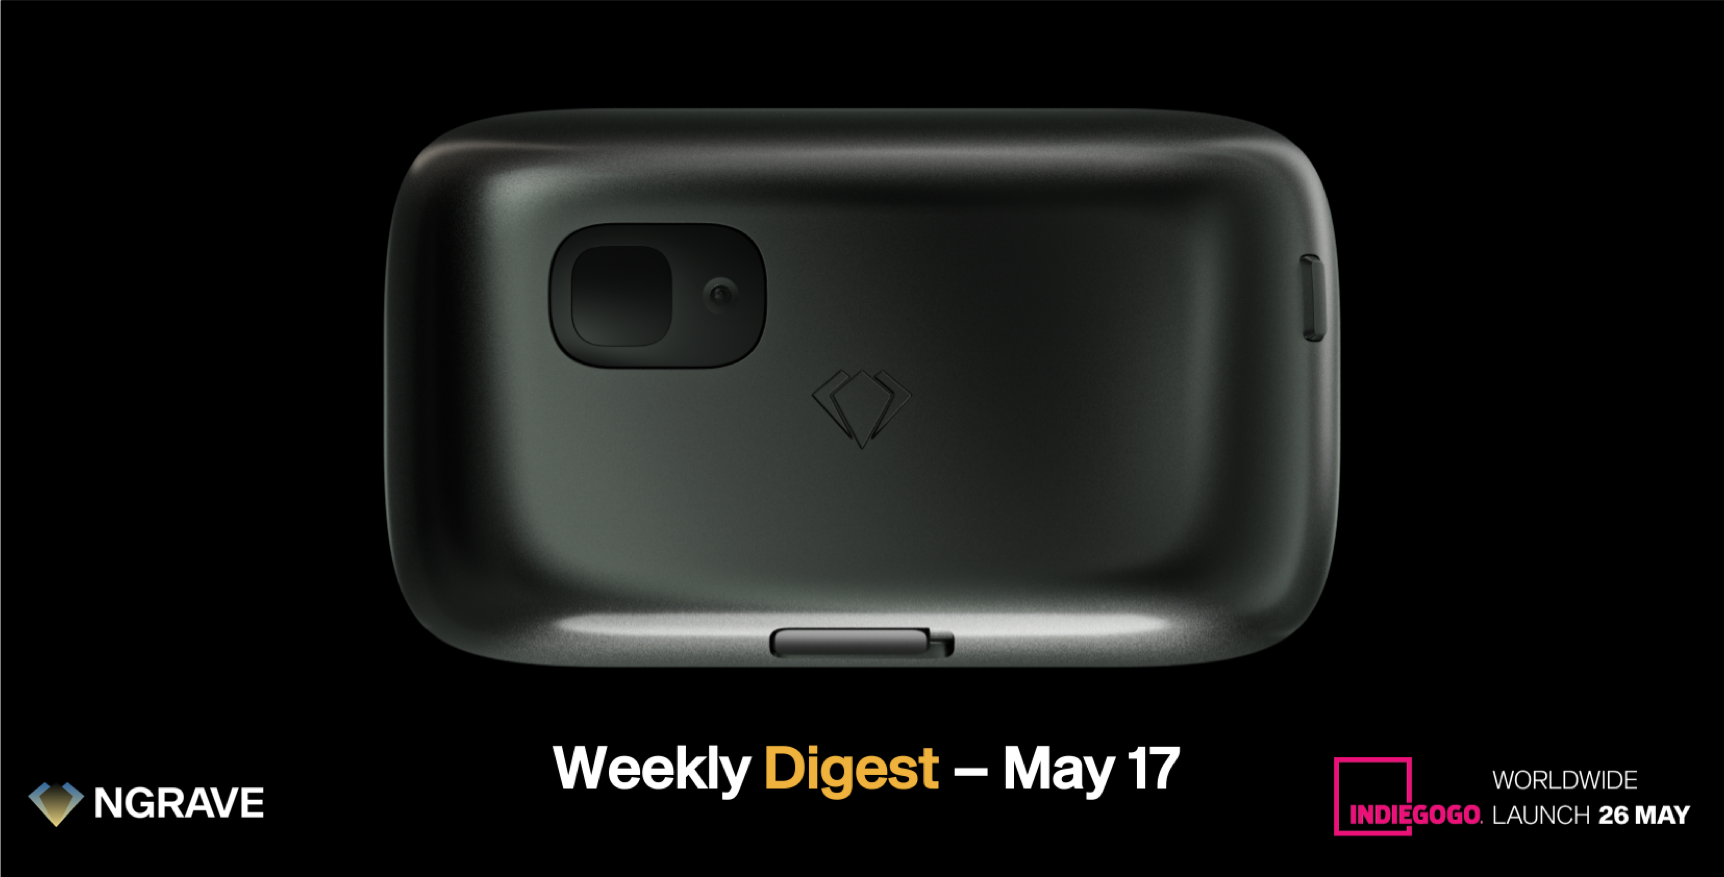 NGRAVE ZERO Indiegogo pre-order campaign on May 26. Weekly Digest May 17. Ruben Merre. Crypto hardware wallet, cold wallet.